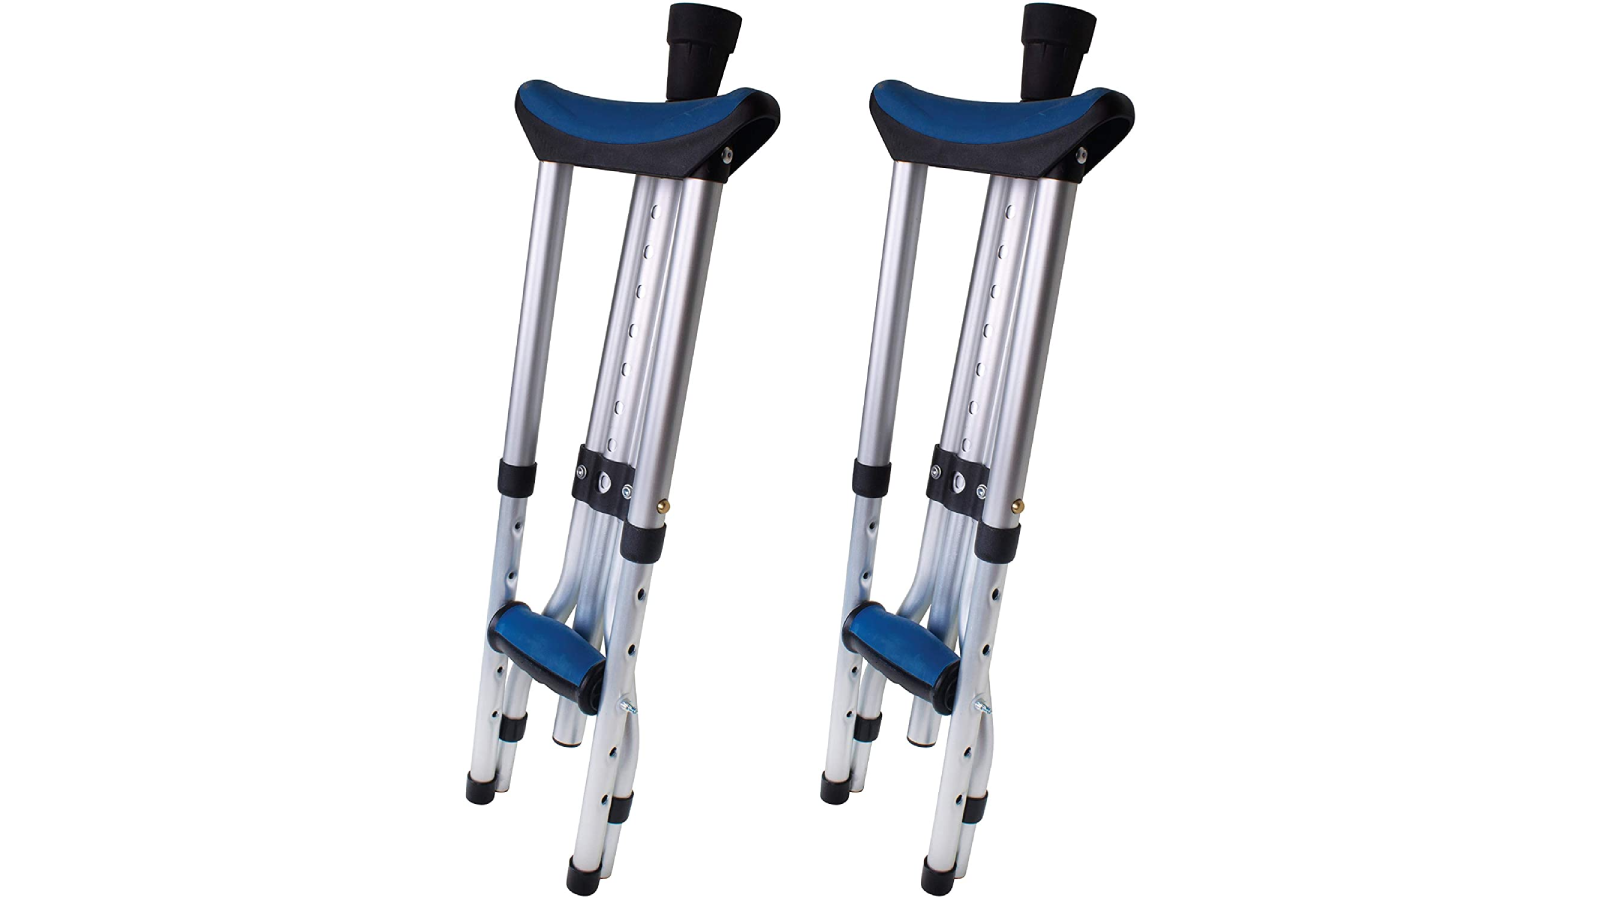 Folded up crutches with blue accents on the pads